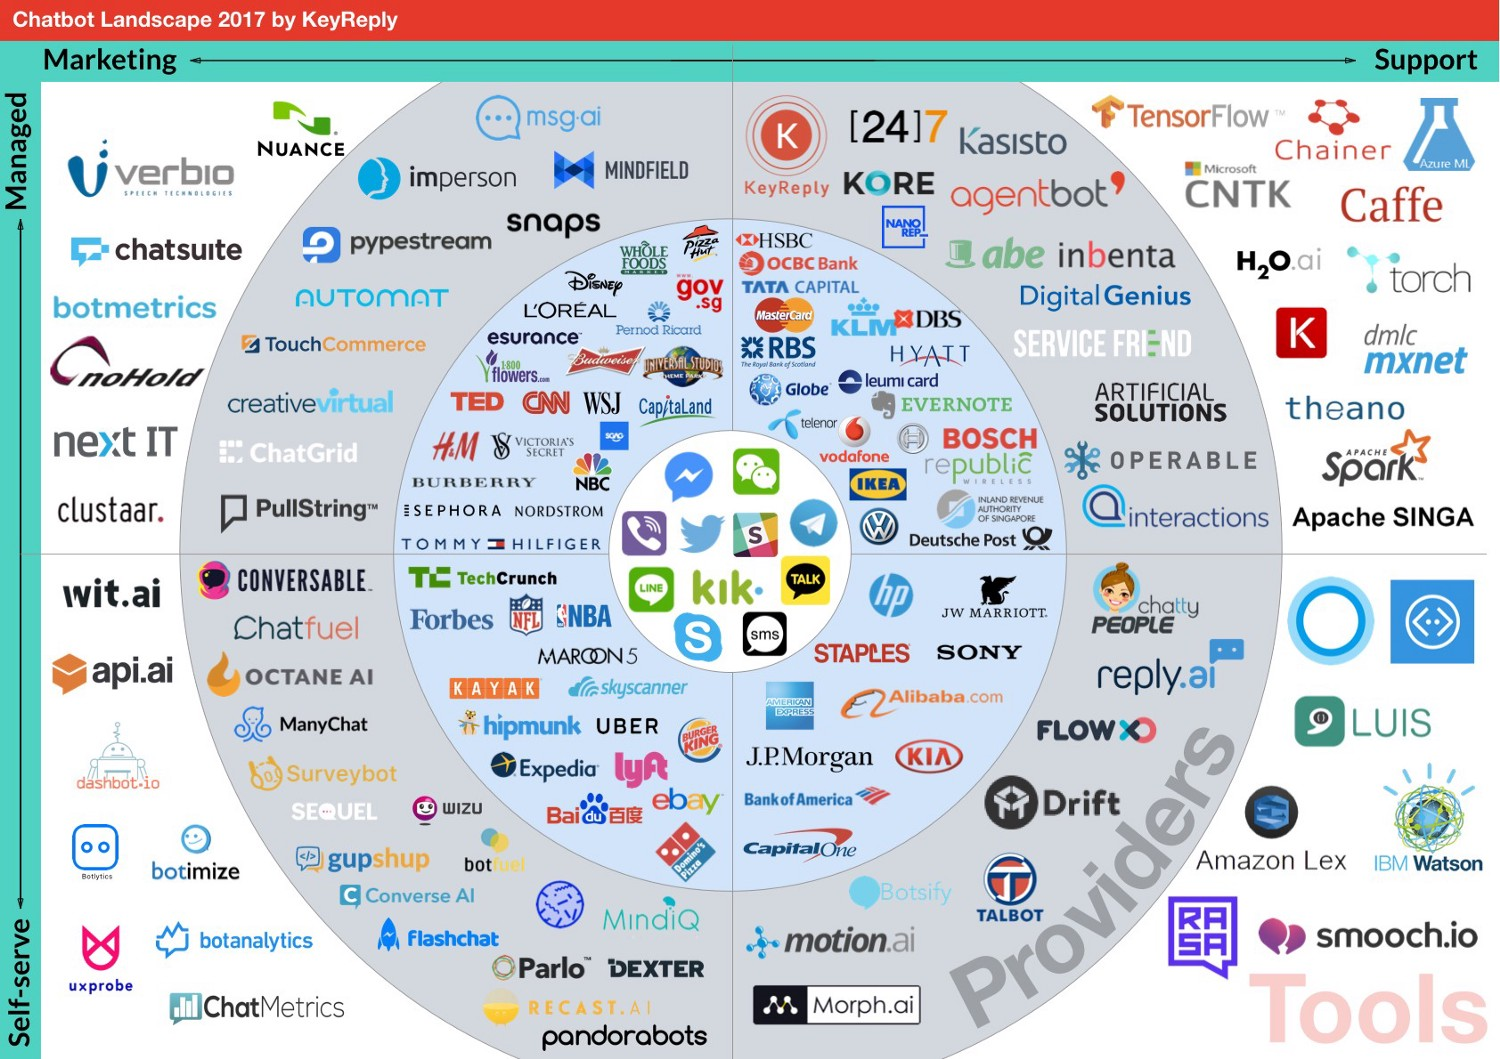 Exhaustive map of chatbot ecosystem